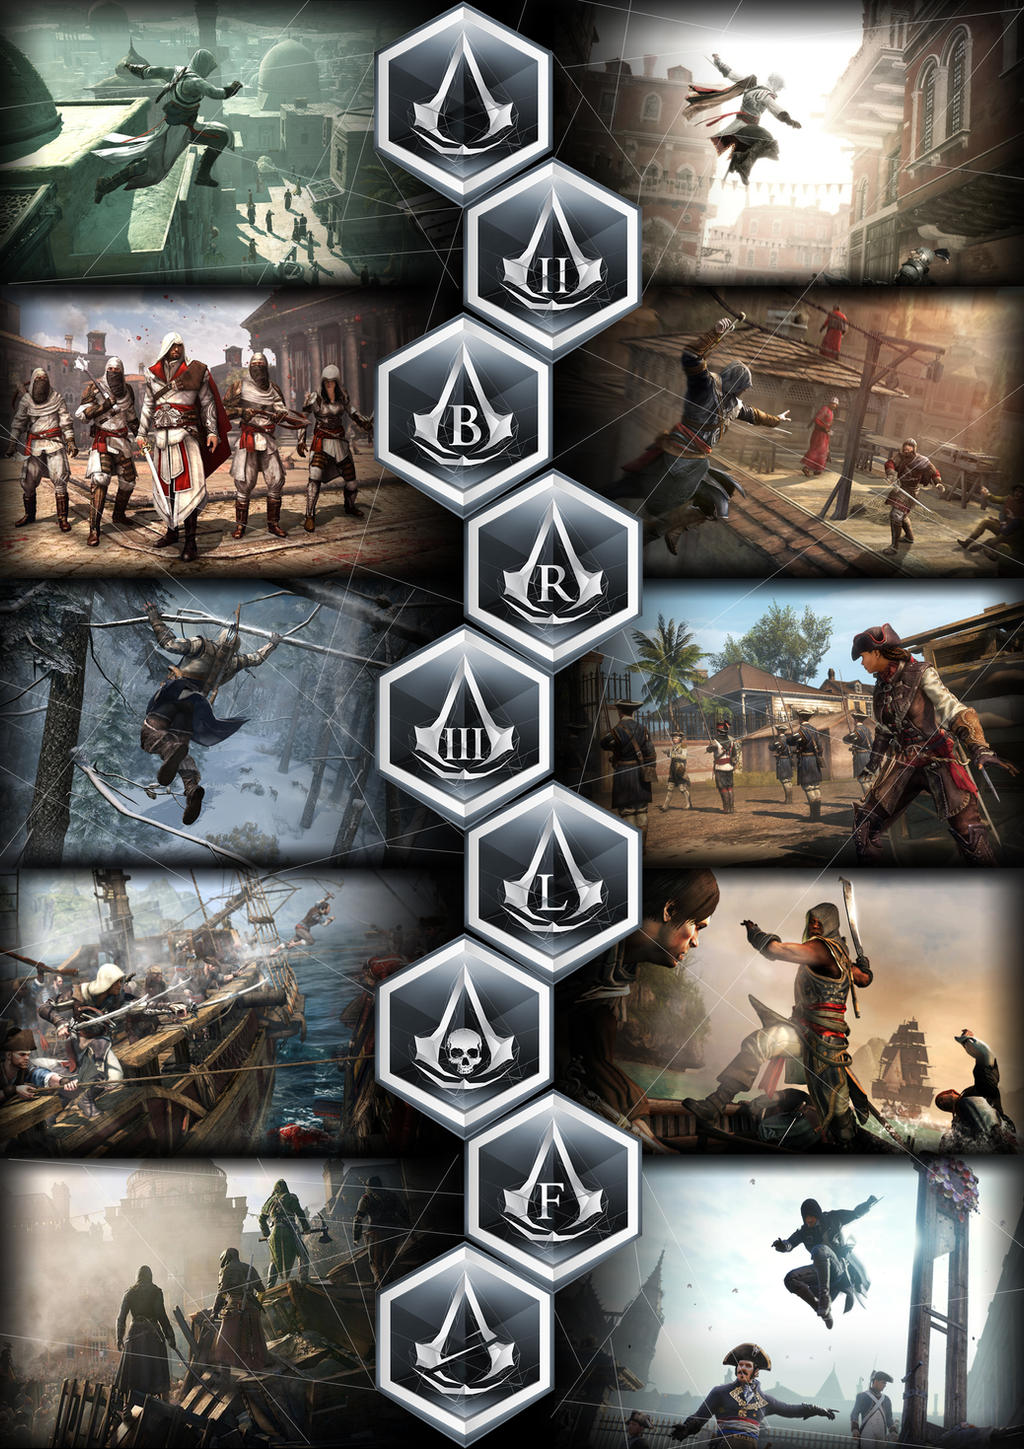 Assassins Creed Poster All Games By Gingerjmez On Deviantart